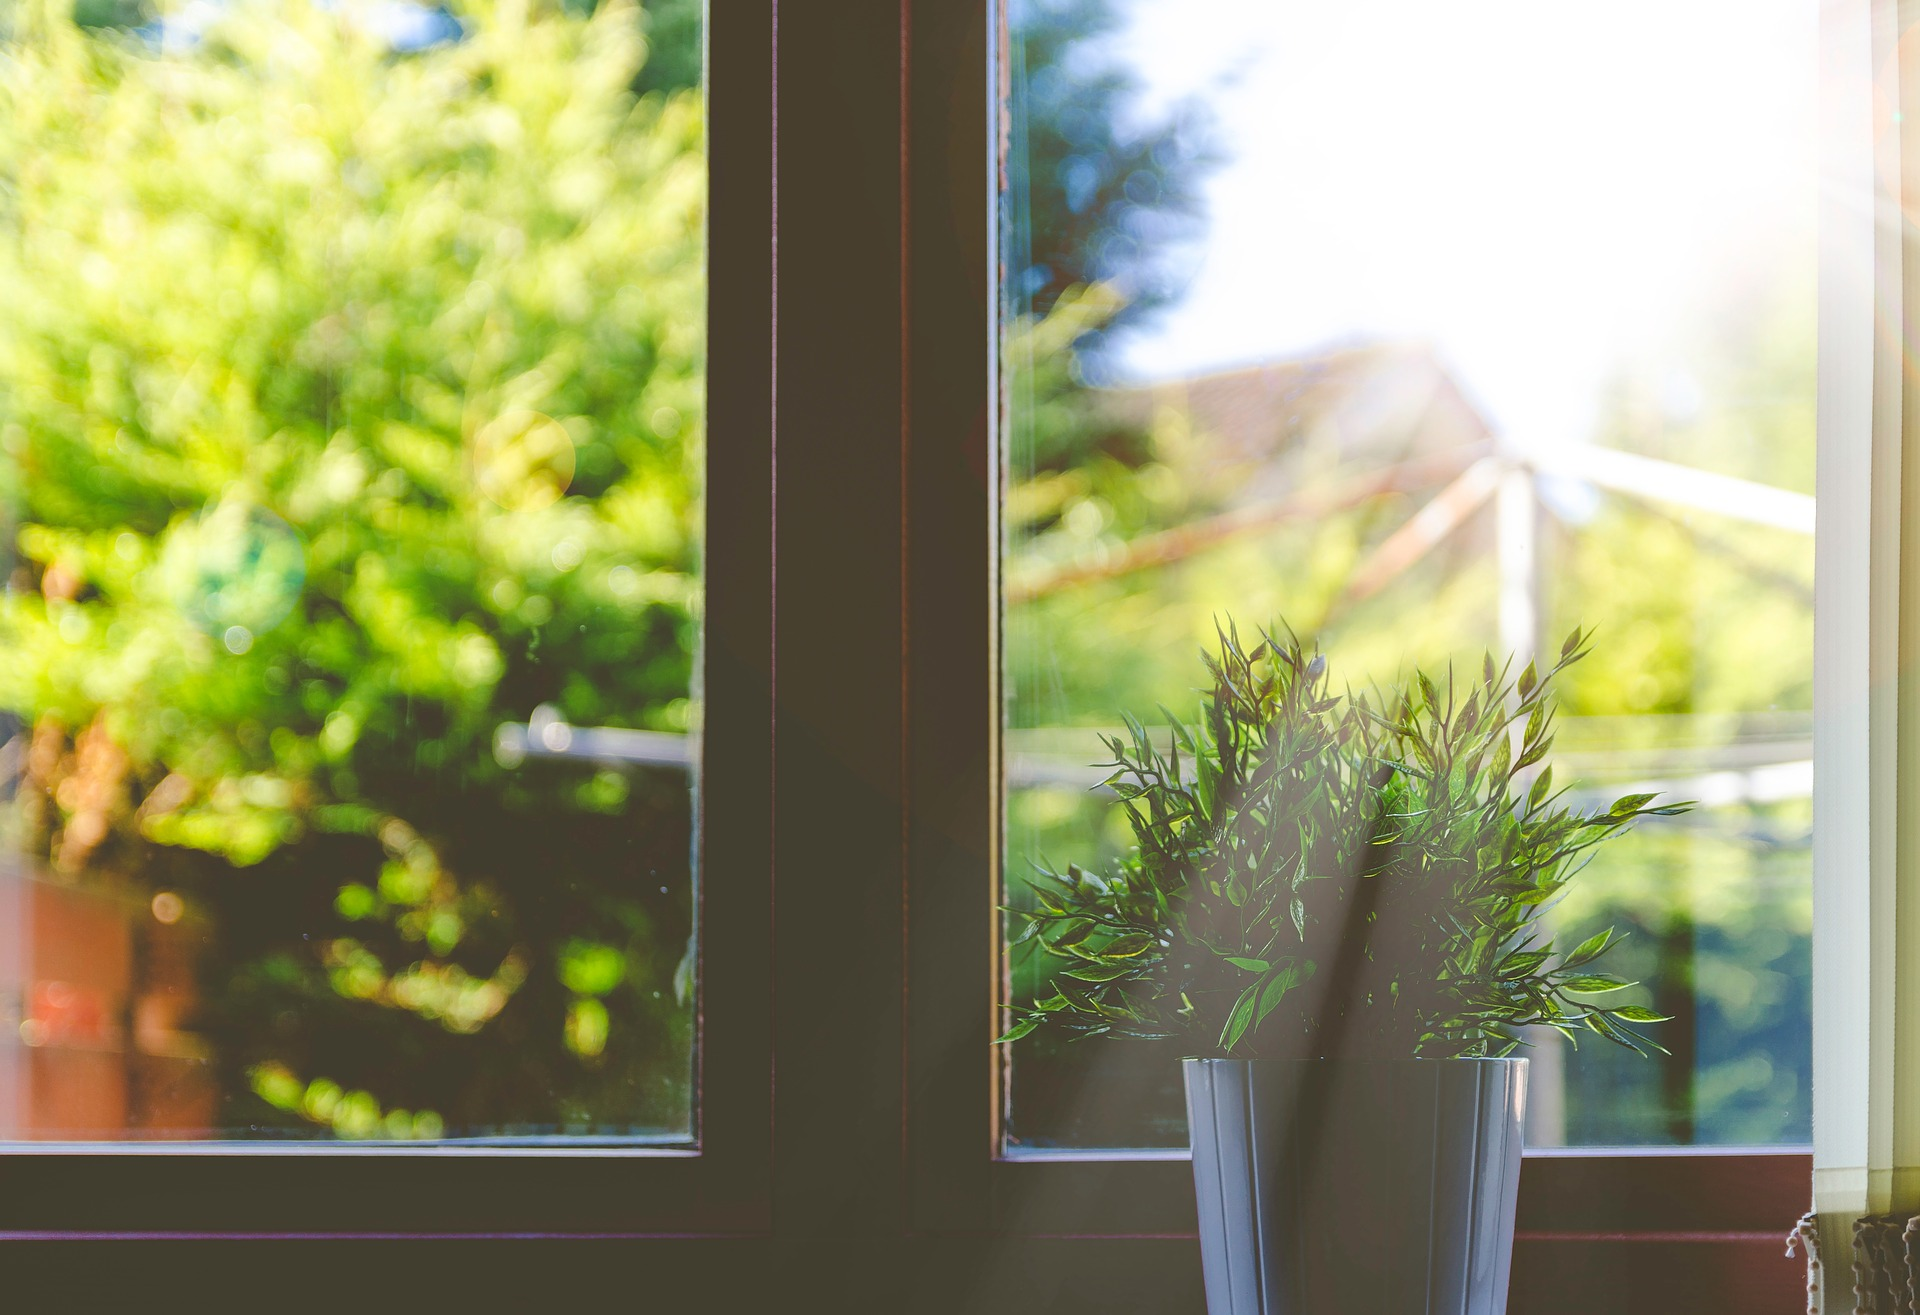 window with light pouring in and a plant pot on the sill